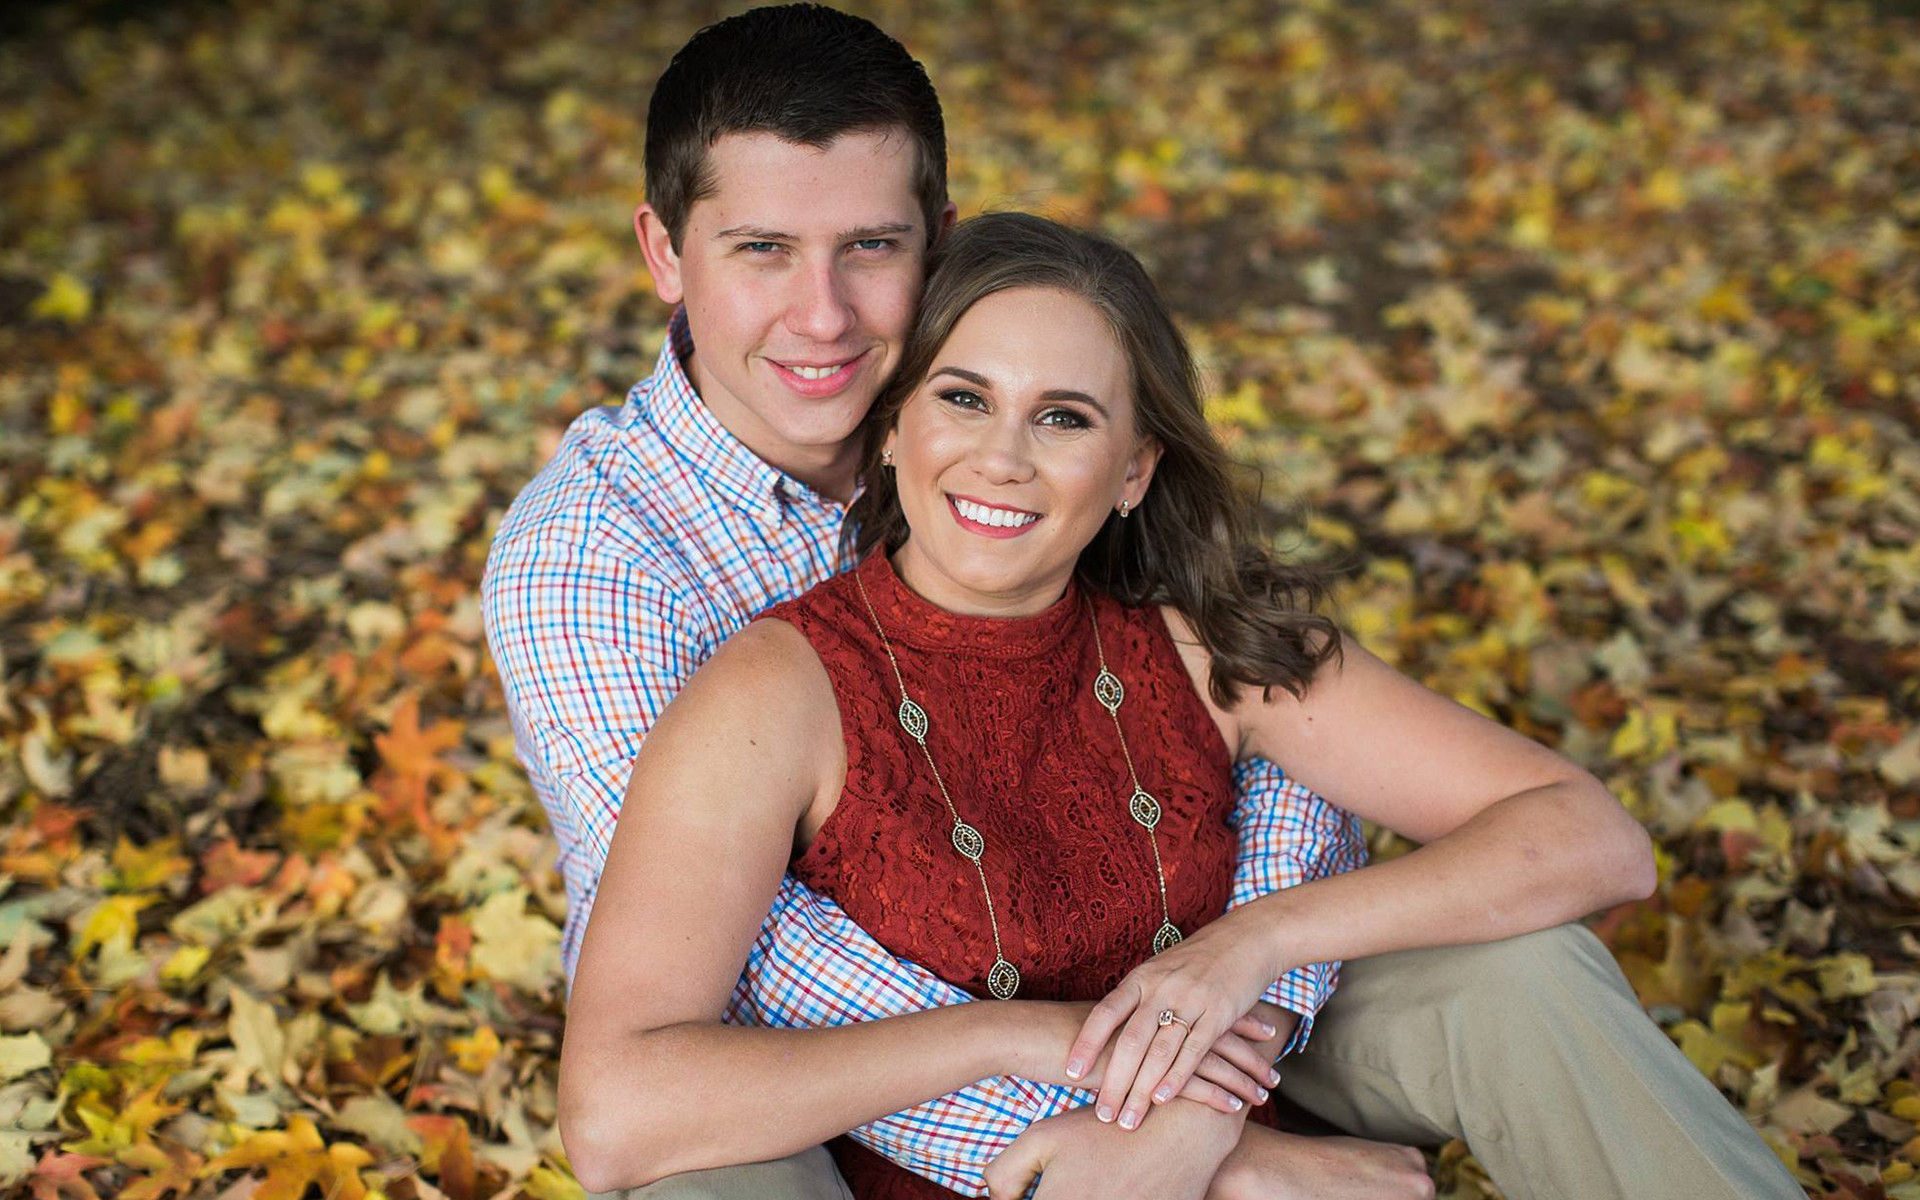 A Chilly Fall Engagement Shoot in Downtown Davidson